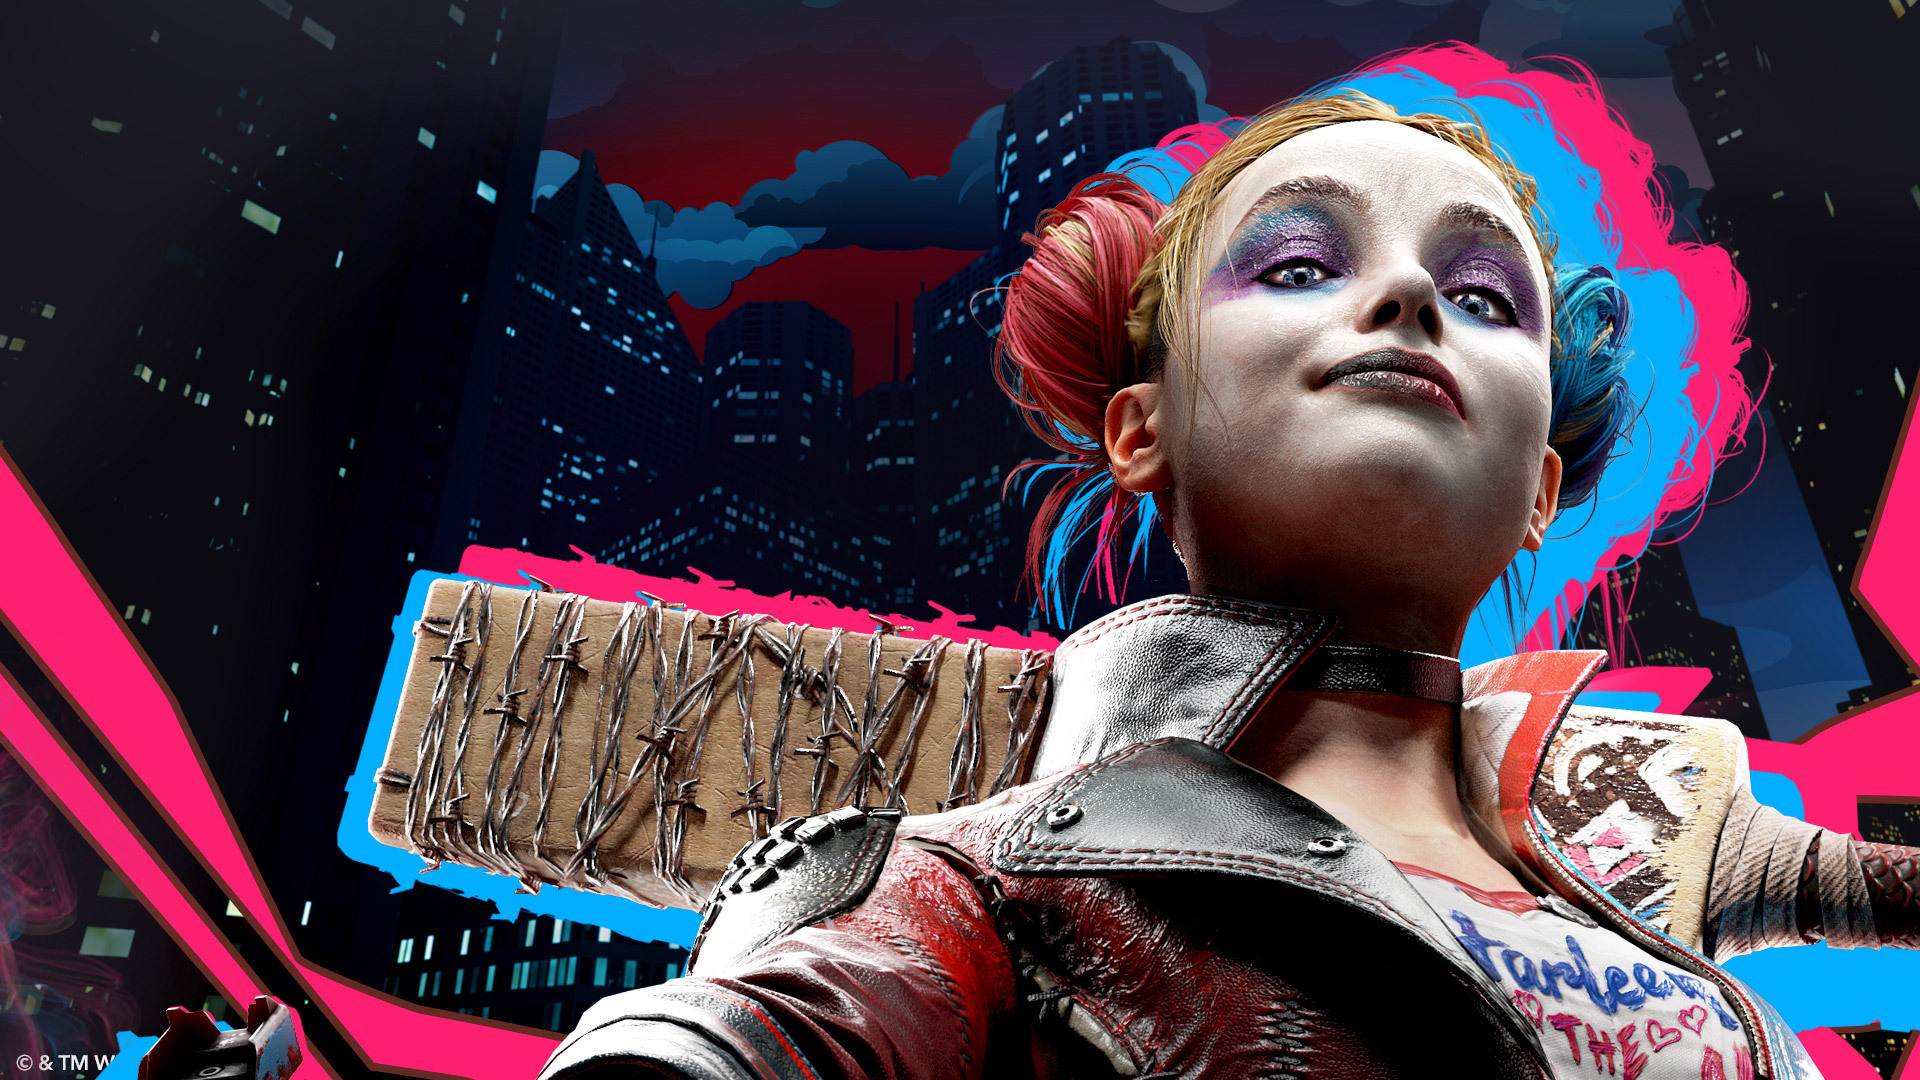 Gotham Knights and Suicide Squad will reappear in October